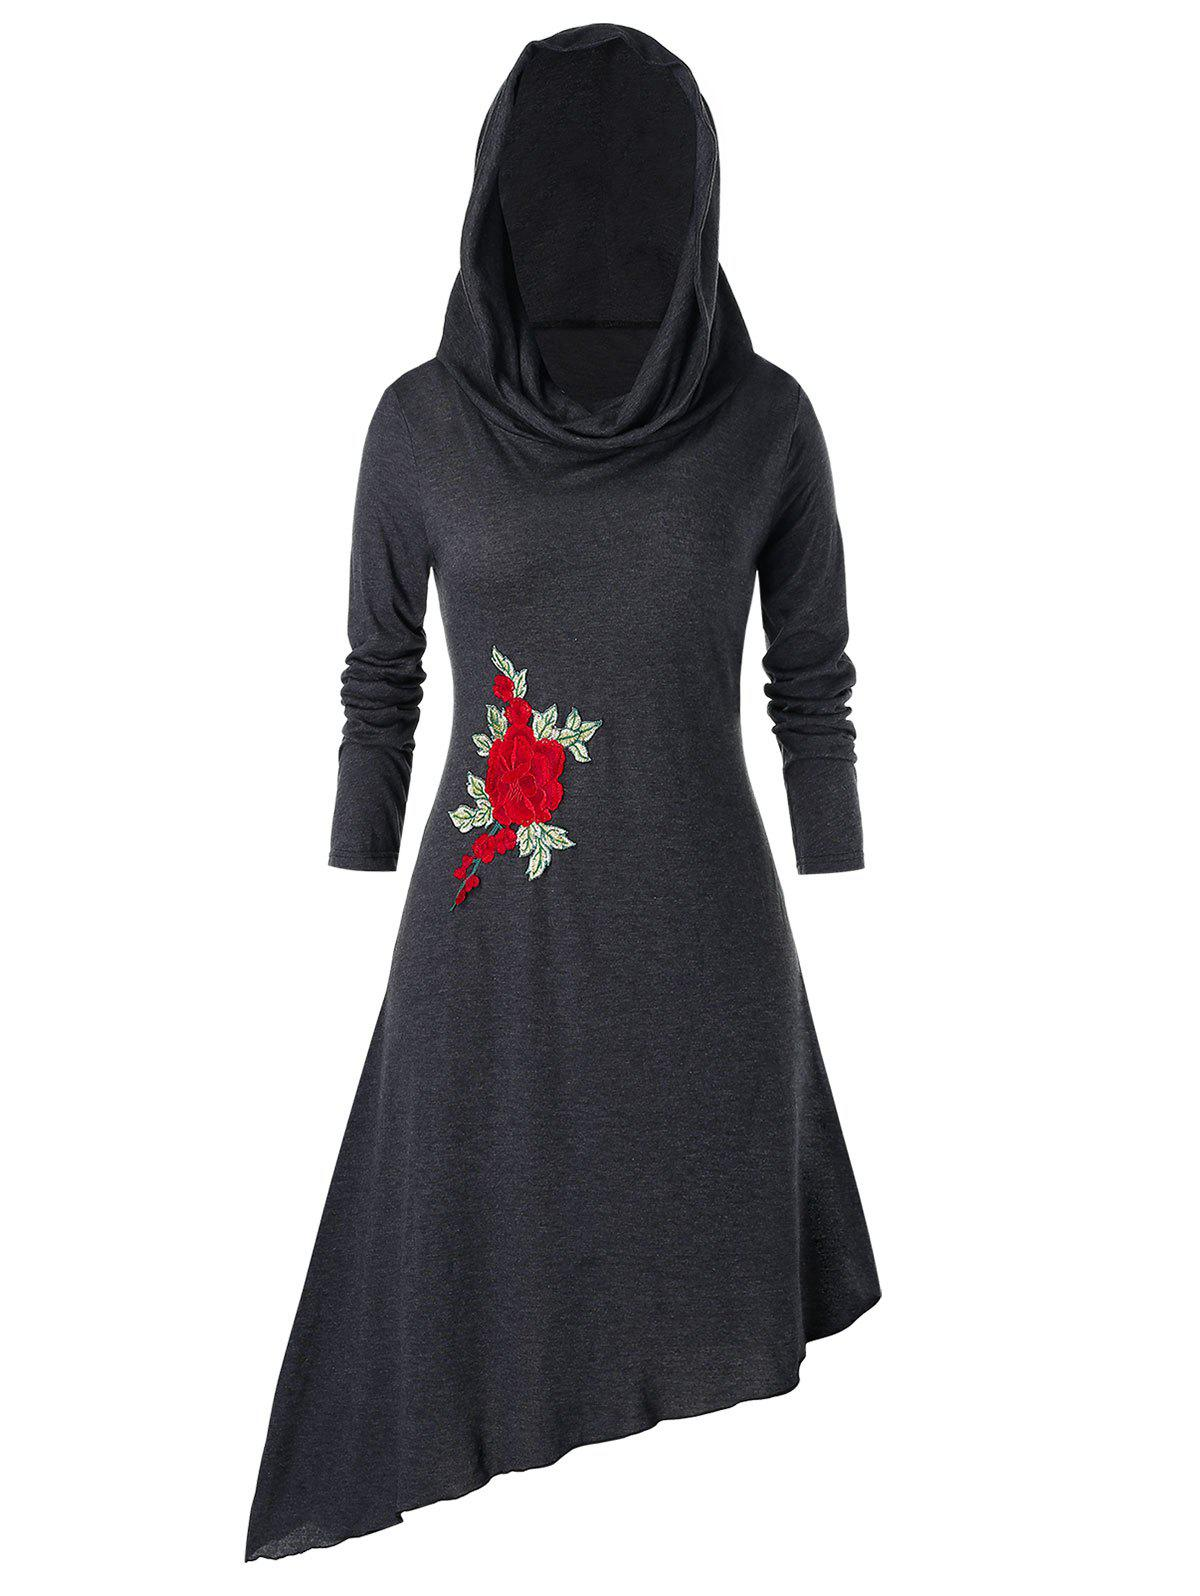 Plus Size Hooded Embroidered Asymmetric Dress - CARBON GRAY 1X